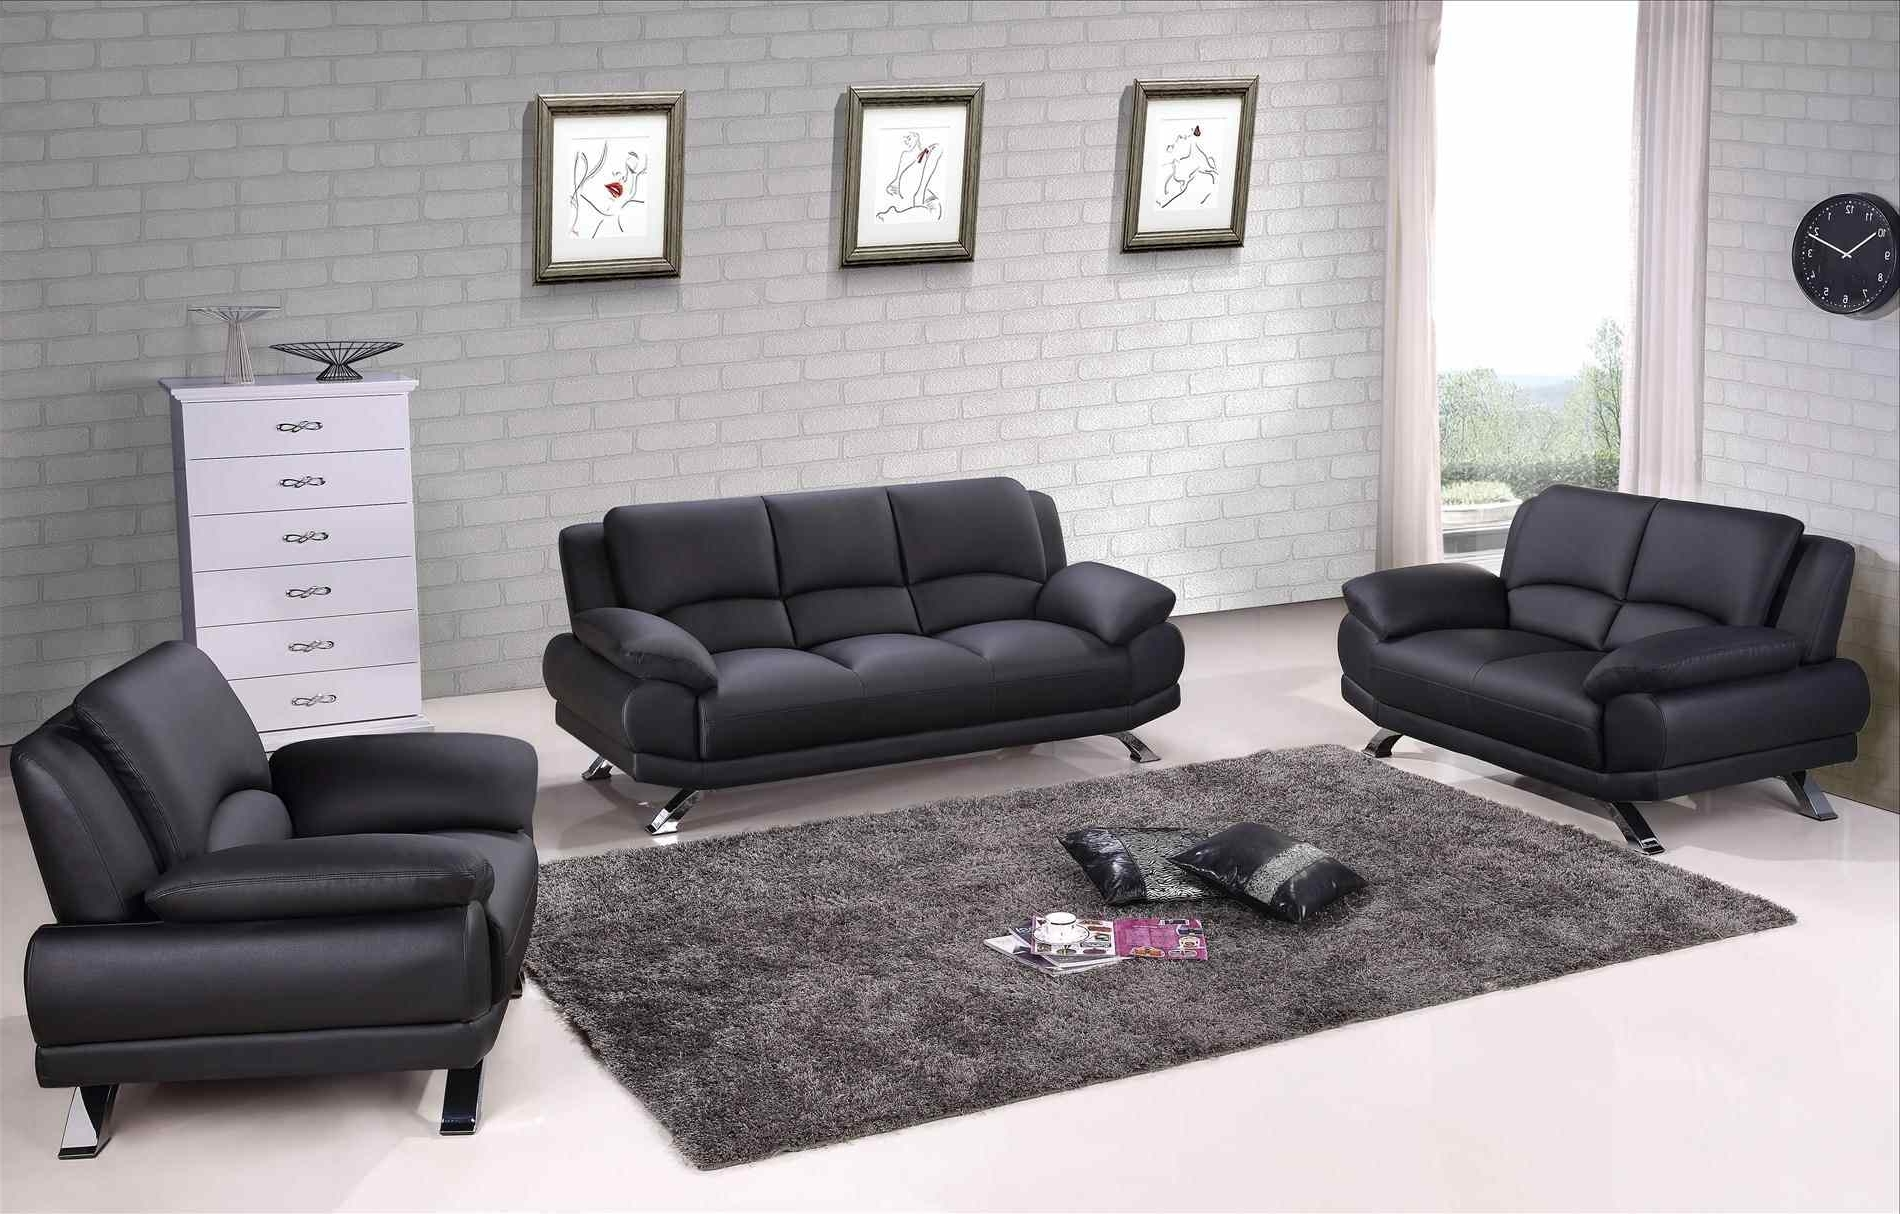 Couch : Genuine Leather Couches Kramfors Lshape Sectional Youtube With Most Recently Released Nj Sectional Sofas (View 5 of 20)